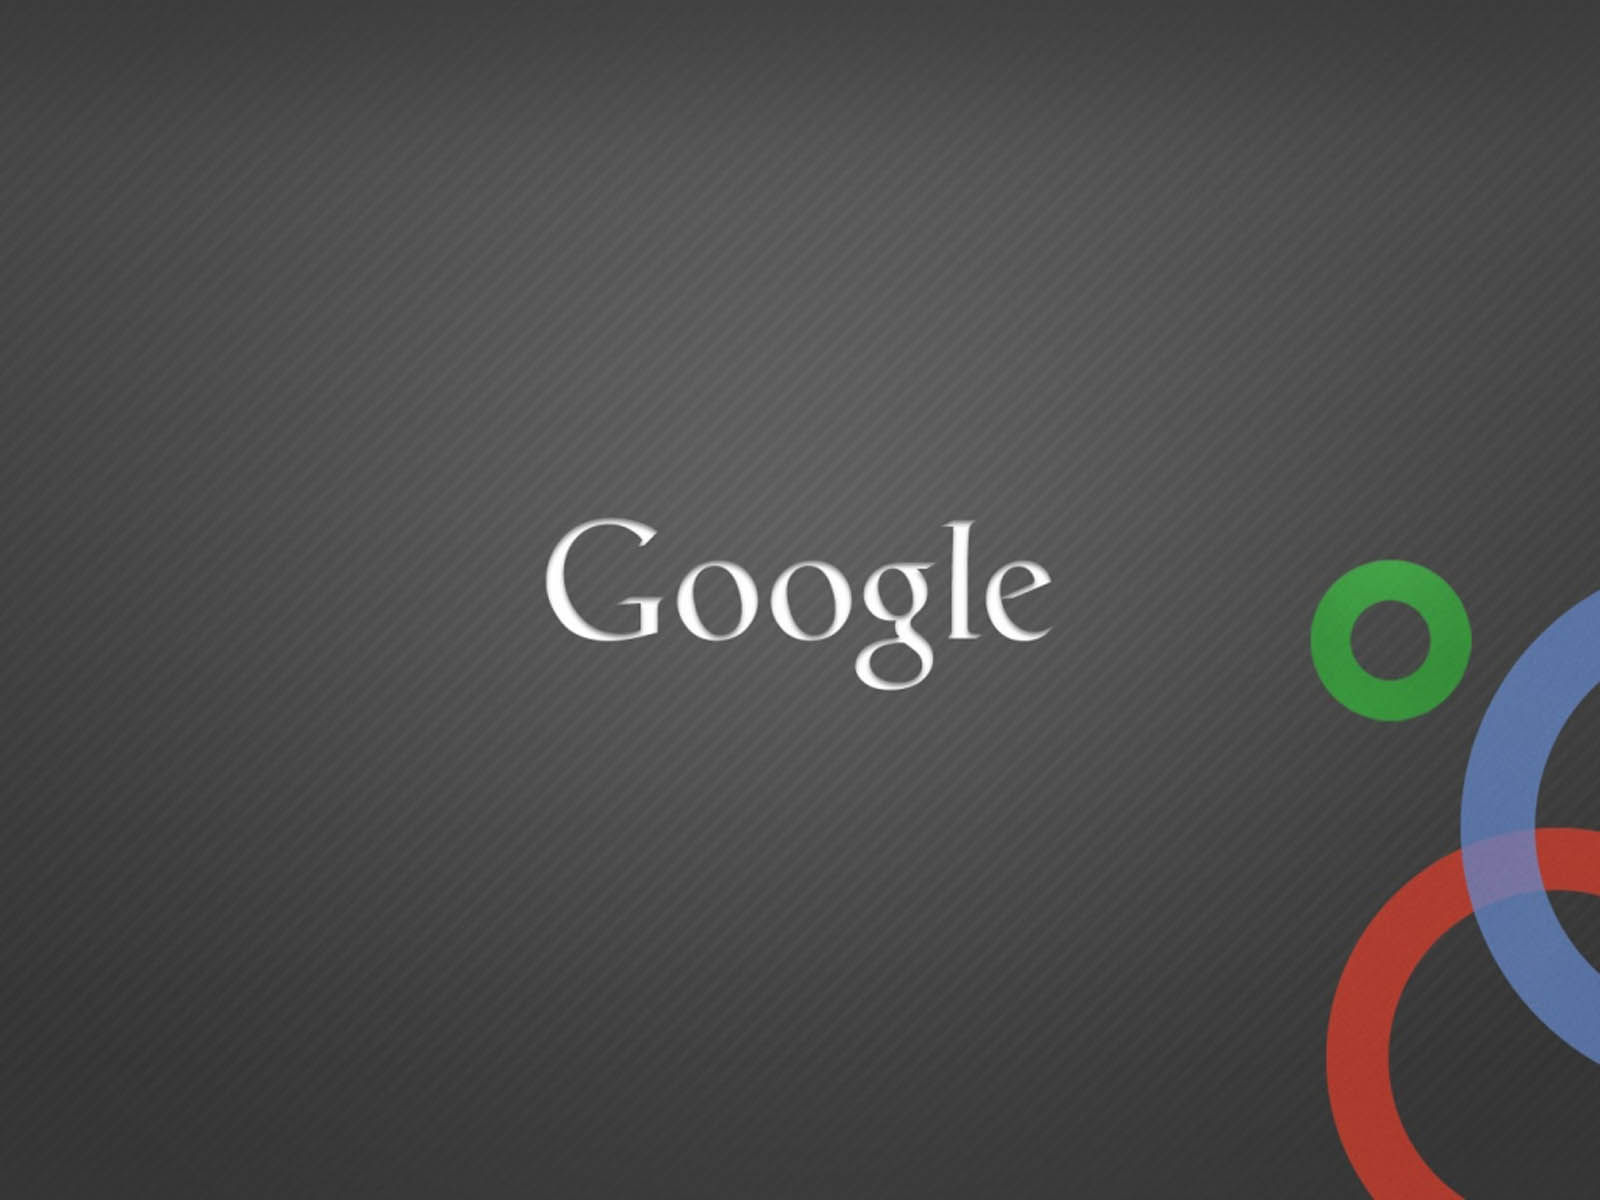 Google HQ wallpapers